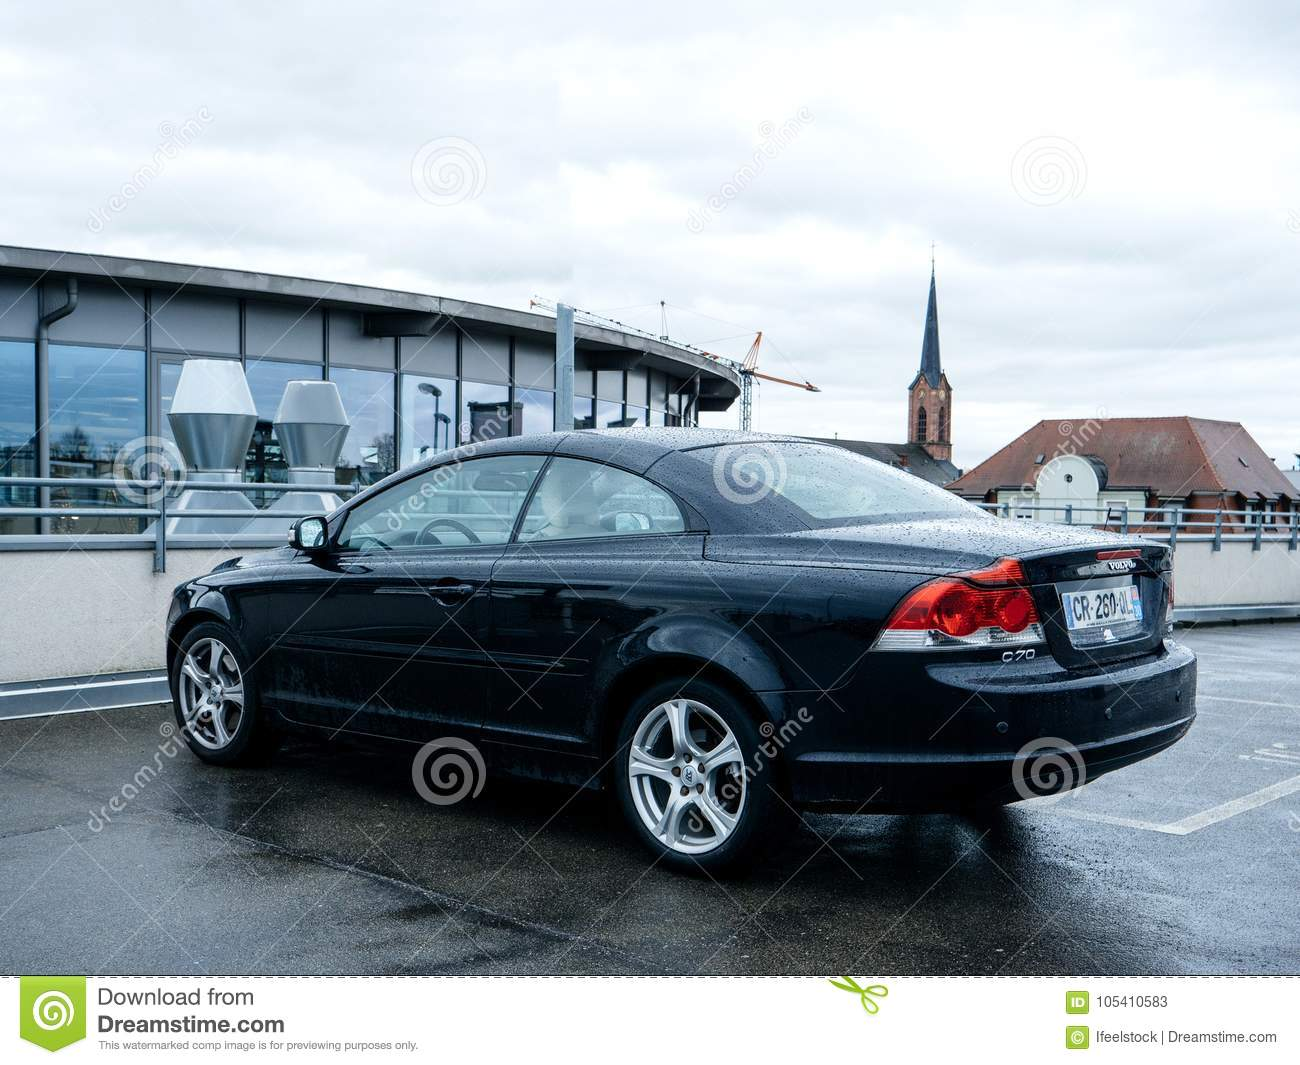 Volvo Car Parked In City C70 Cabriolet Editorial Stock Photo Image